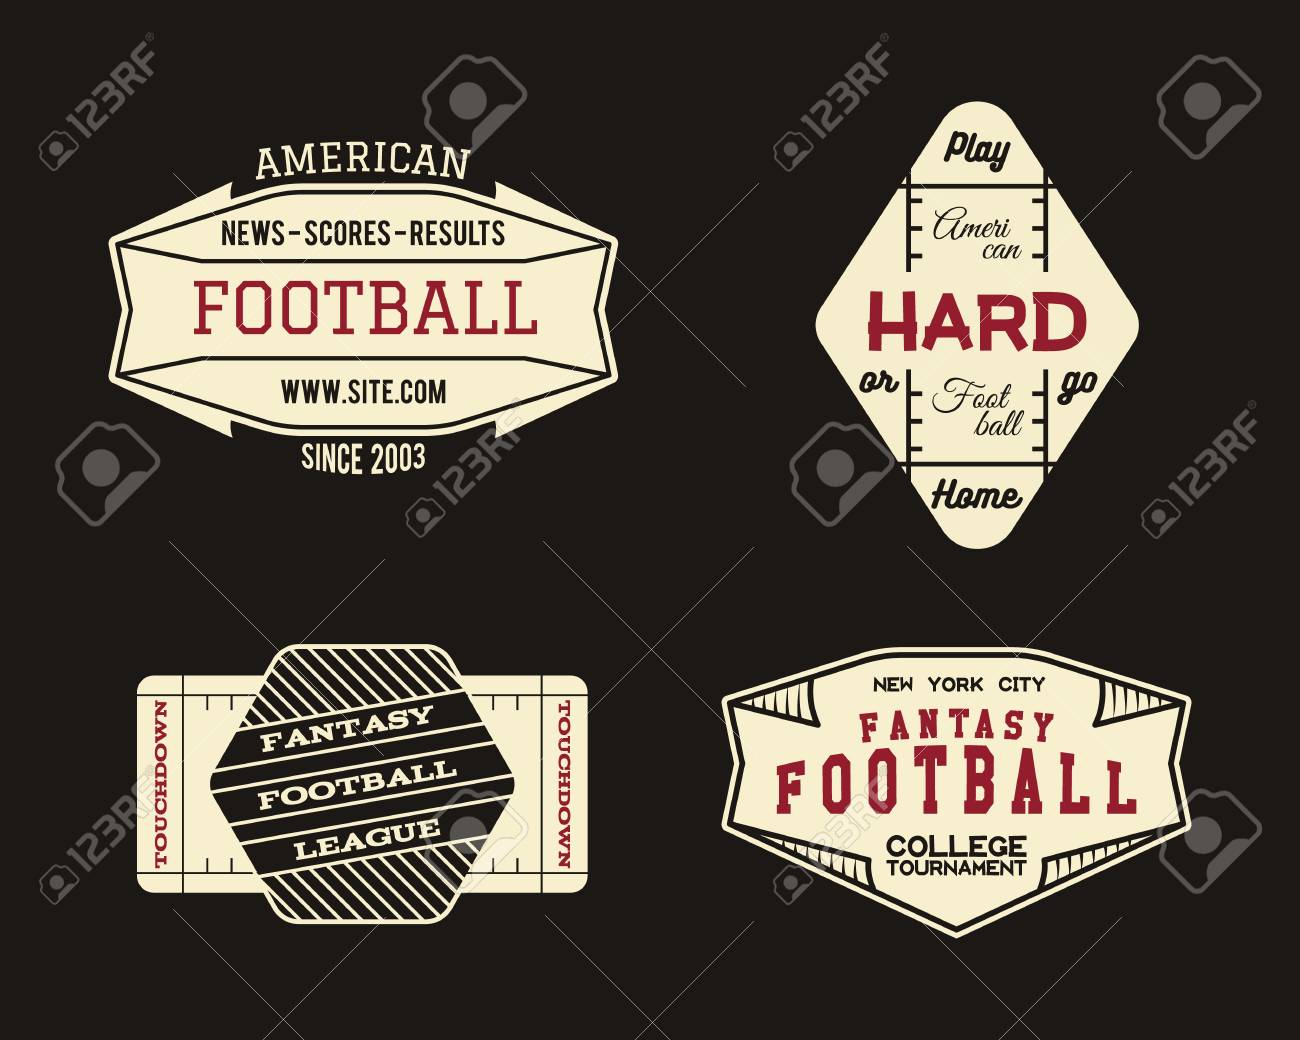 ad14ddae5 American Football Field Geometric Team Or League Badge